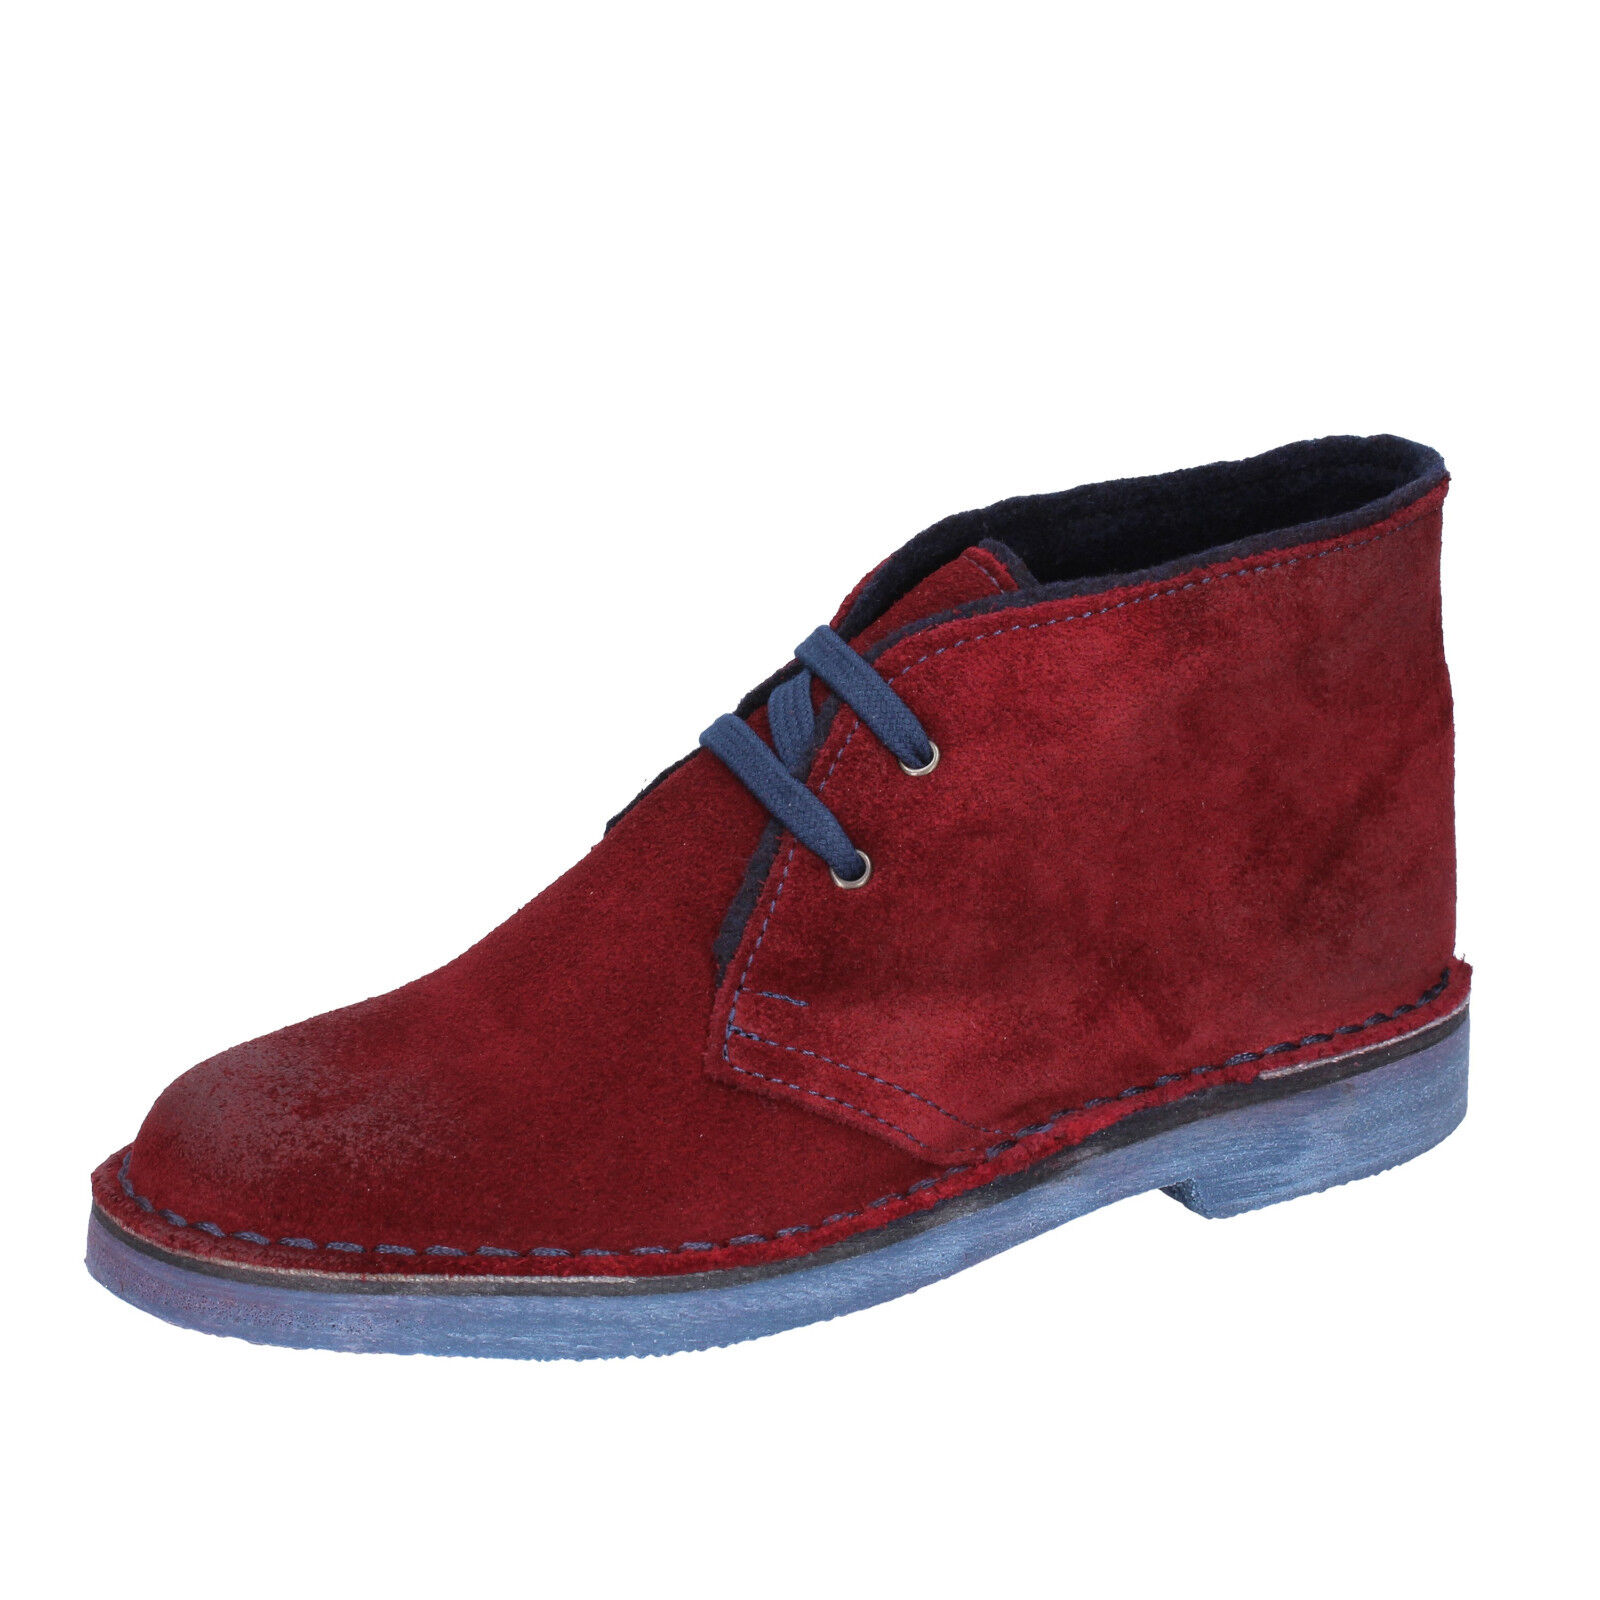 Womens shoes MISS 20 BY CORAF 5 () desert boots burgundy suede BX663-38